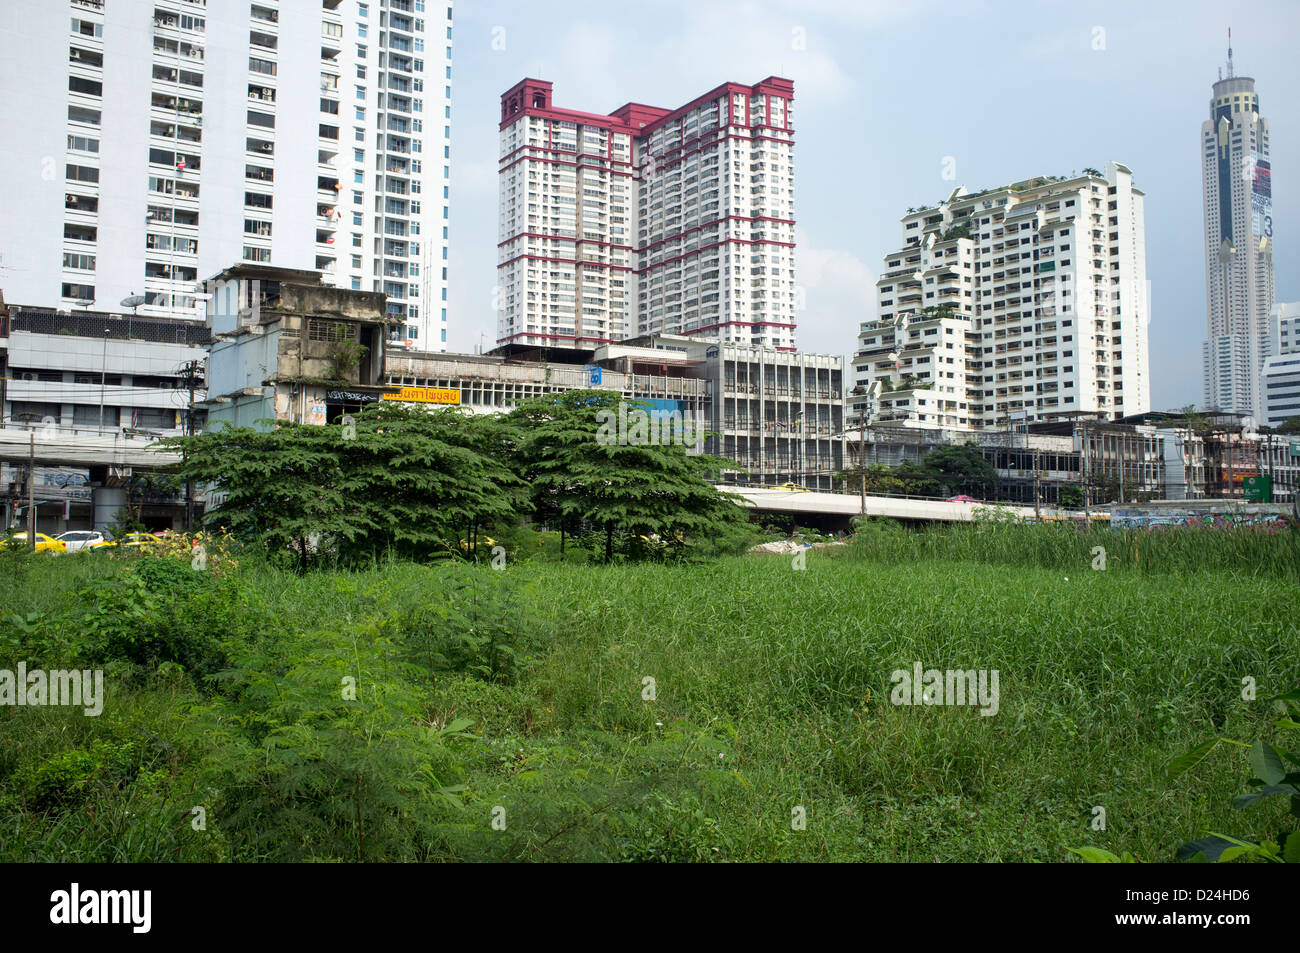 Open space or vacant overgrown lots amongst office building in downtown Bangkok - Stock Image